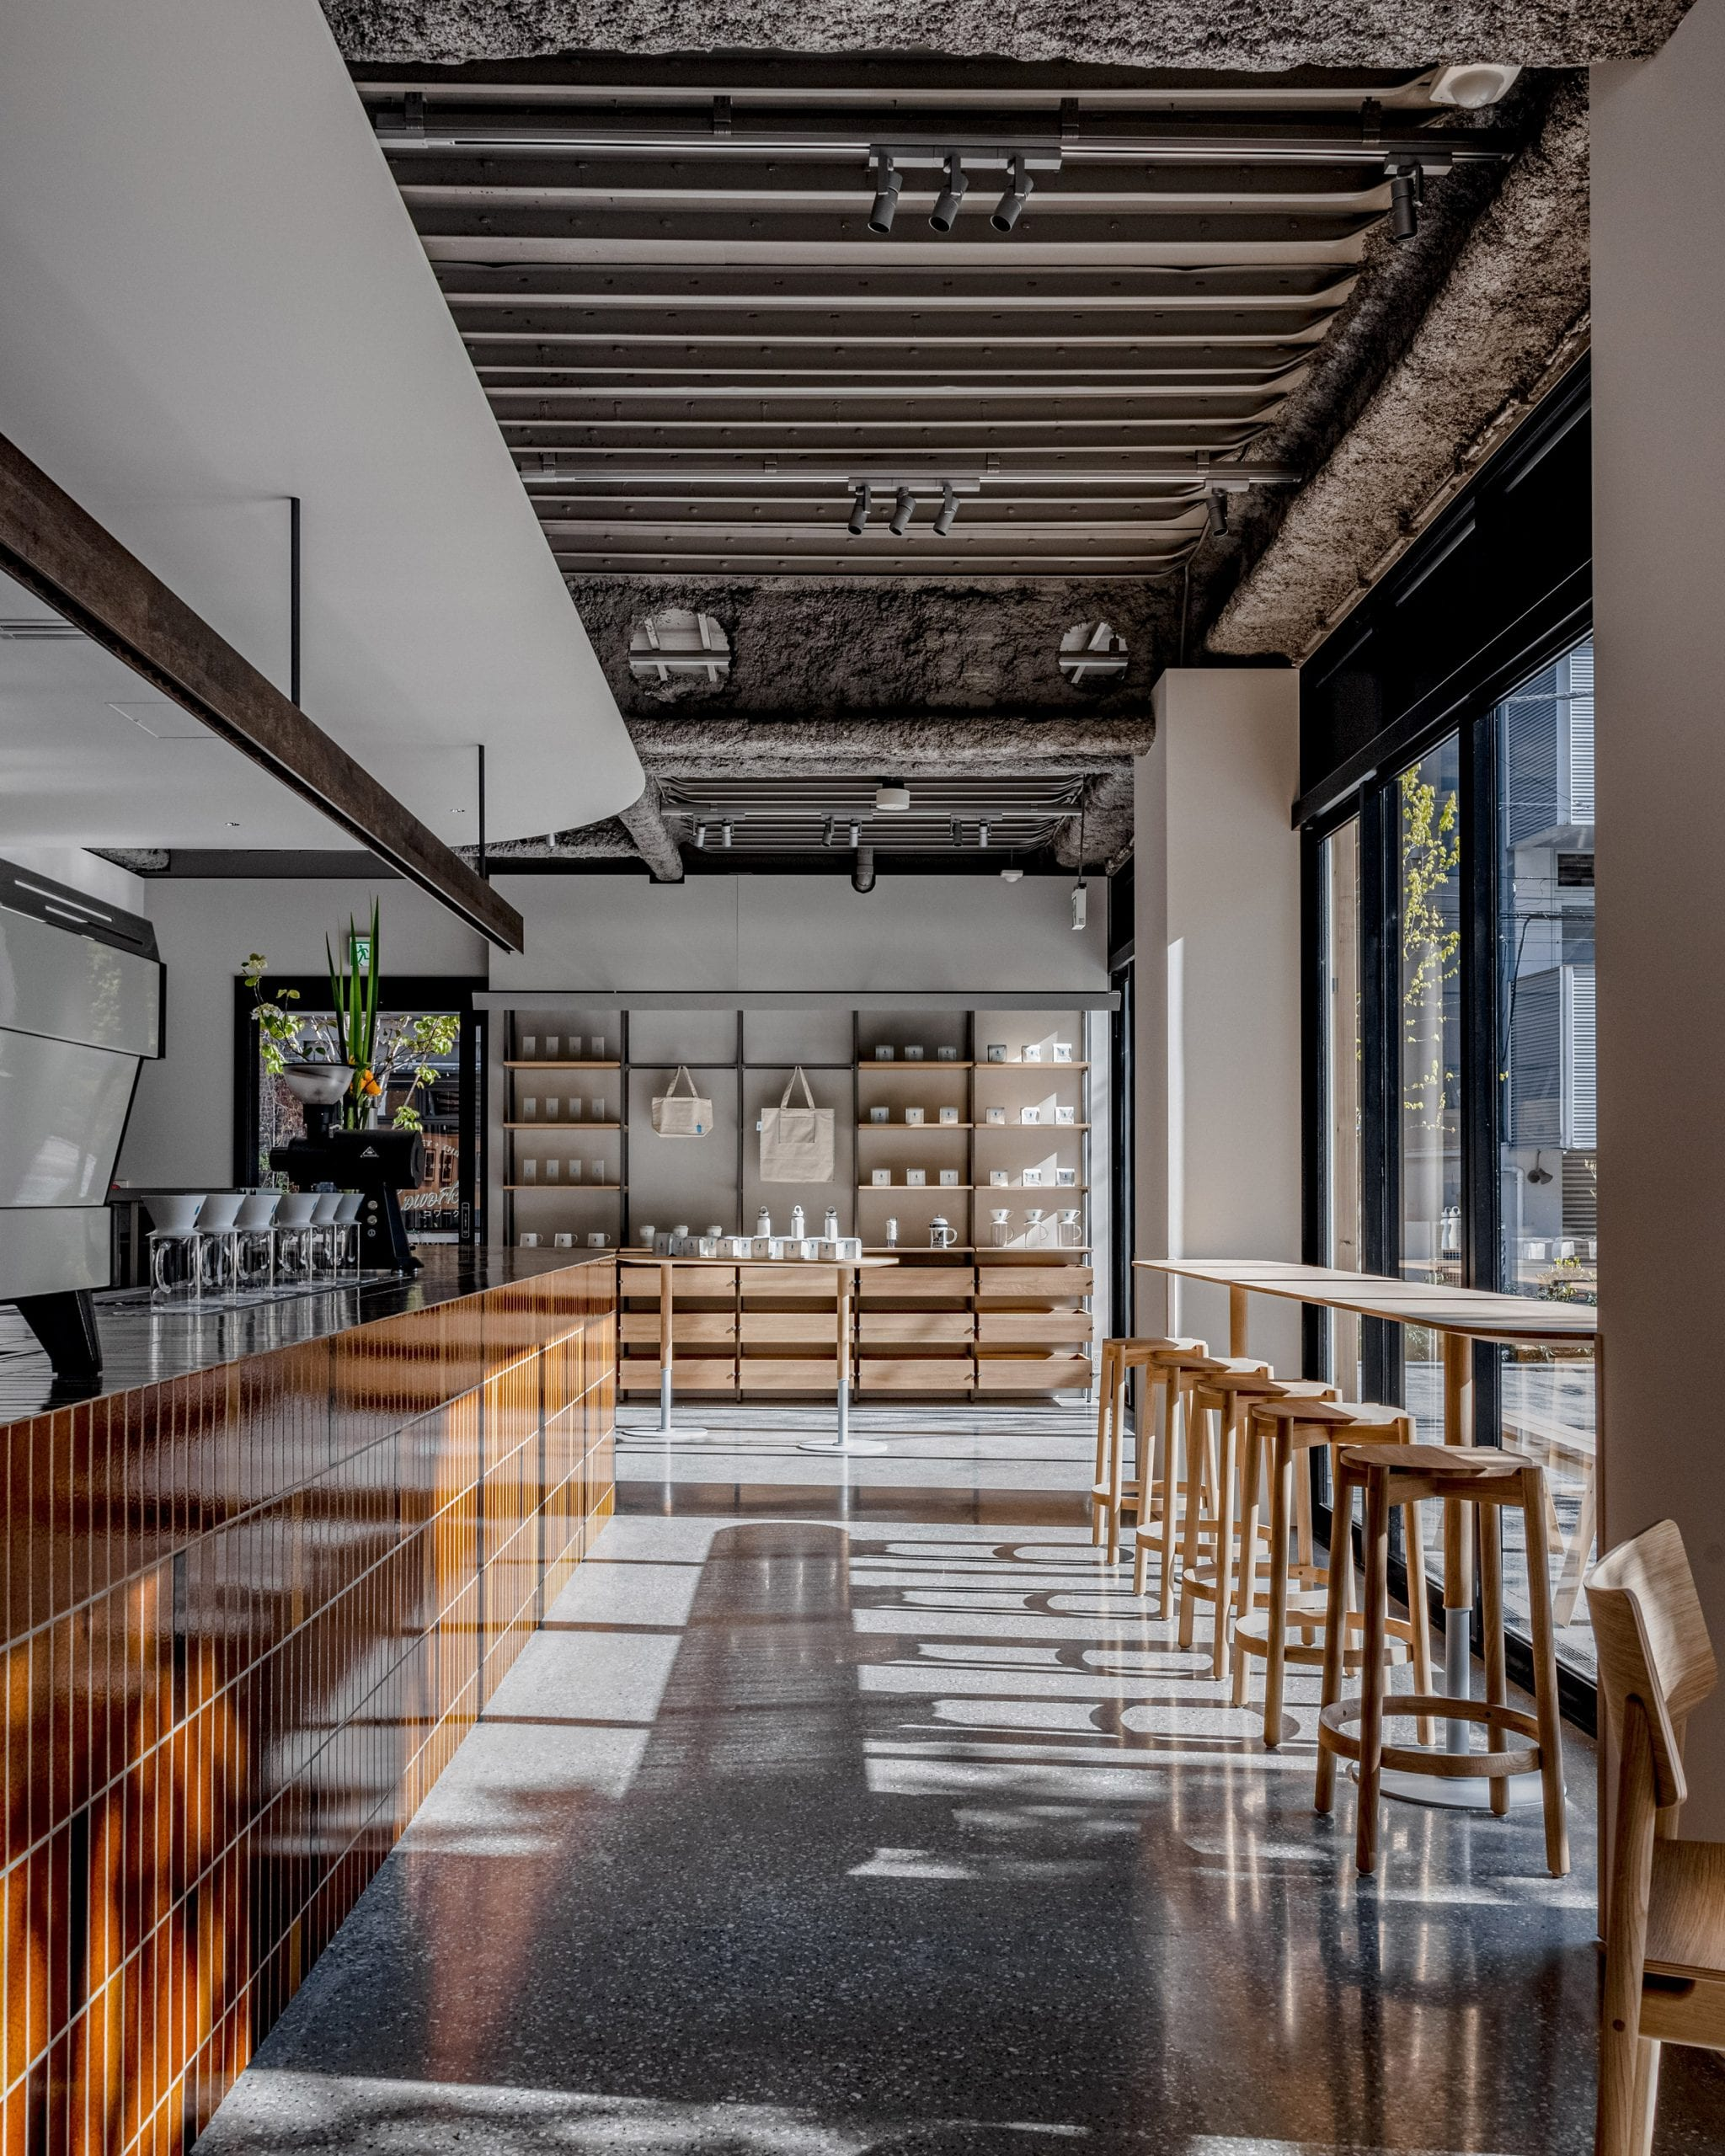 Brown-tiled bar and wooden counter seating in coffee shop by Keiji Ashizawa Design